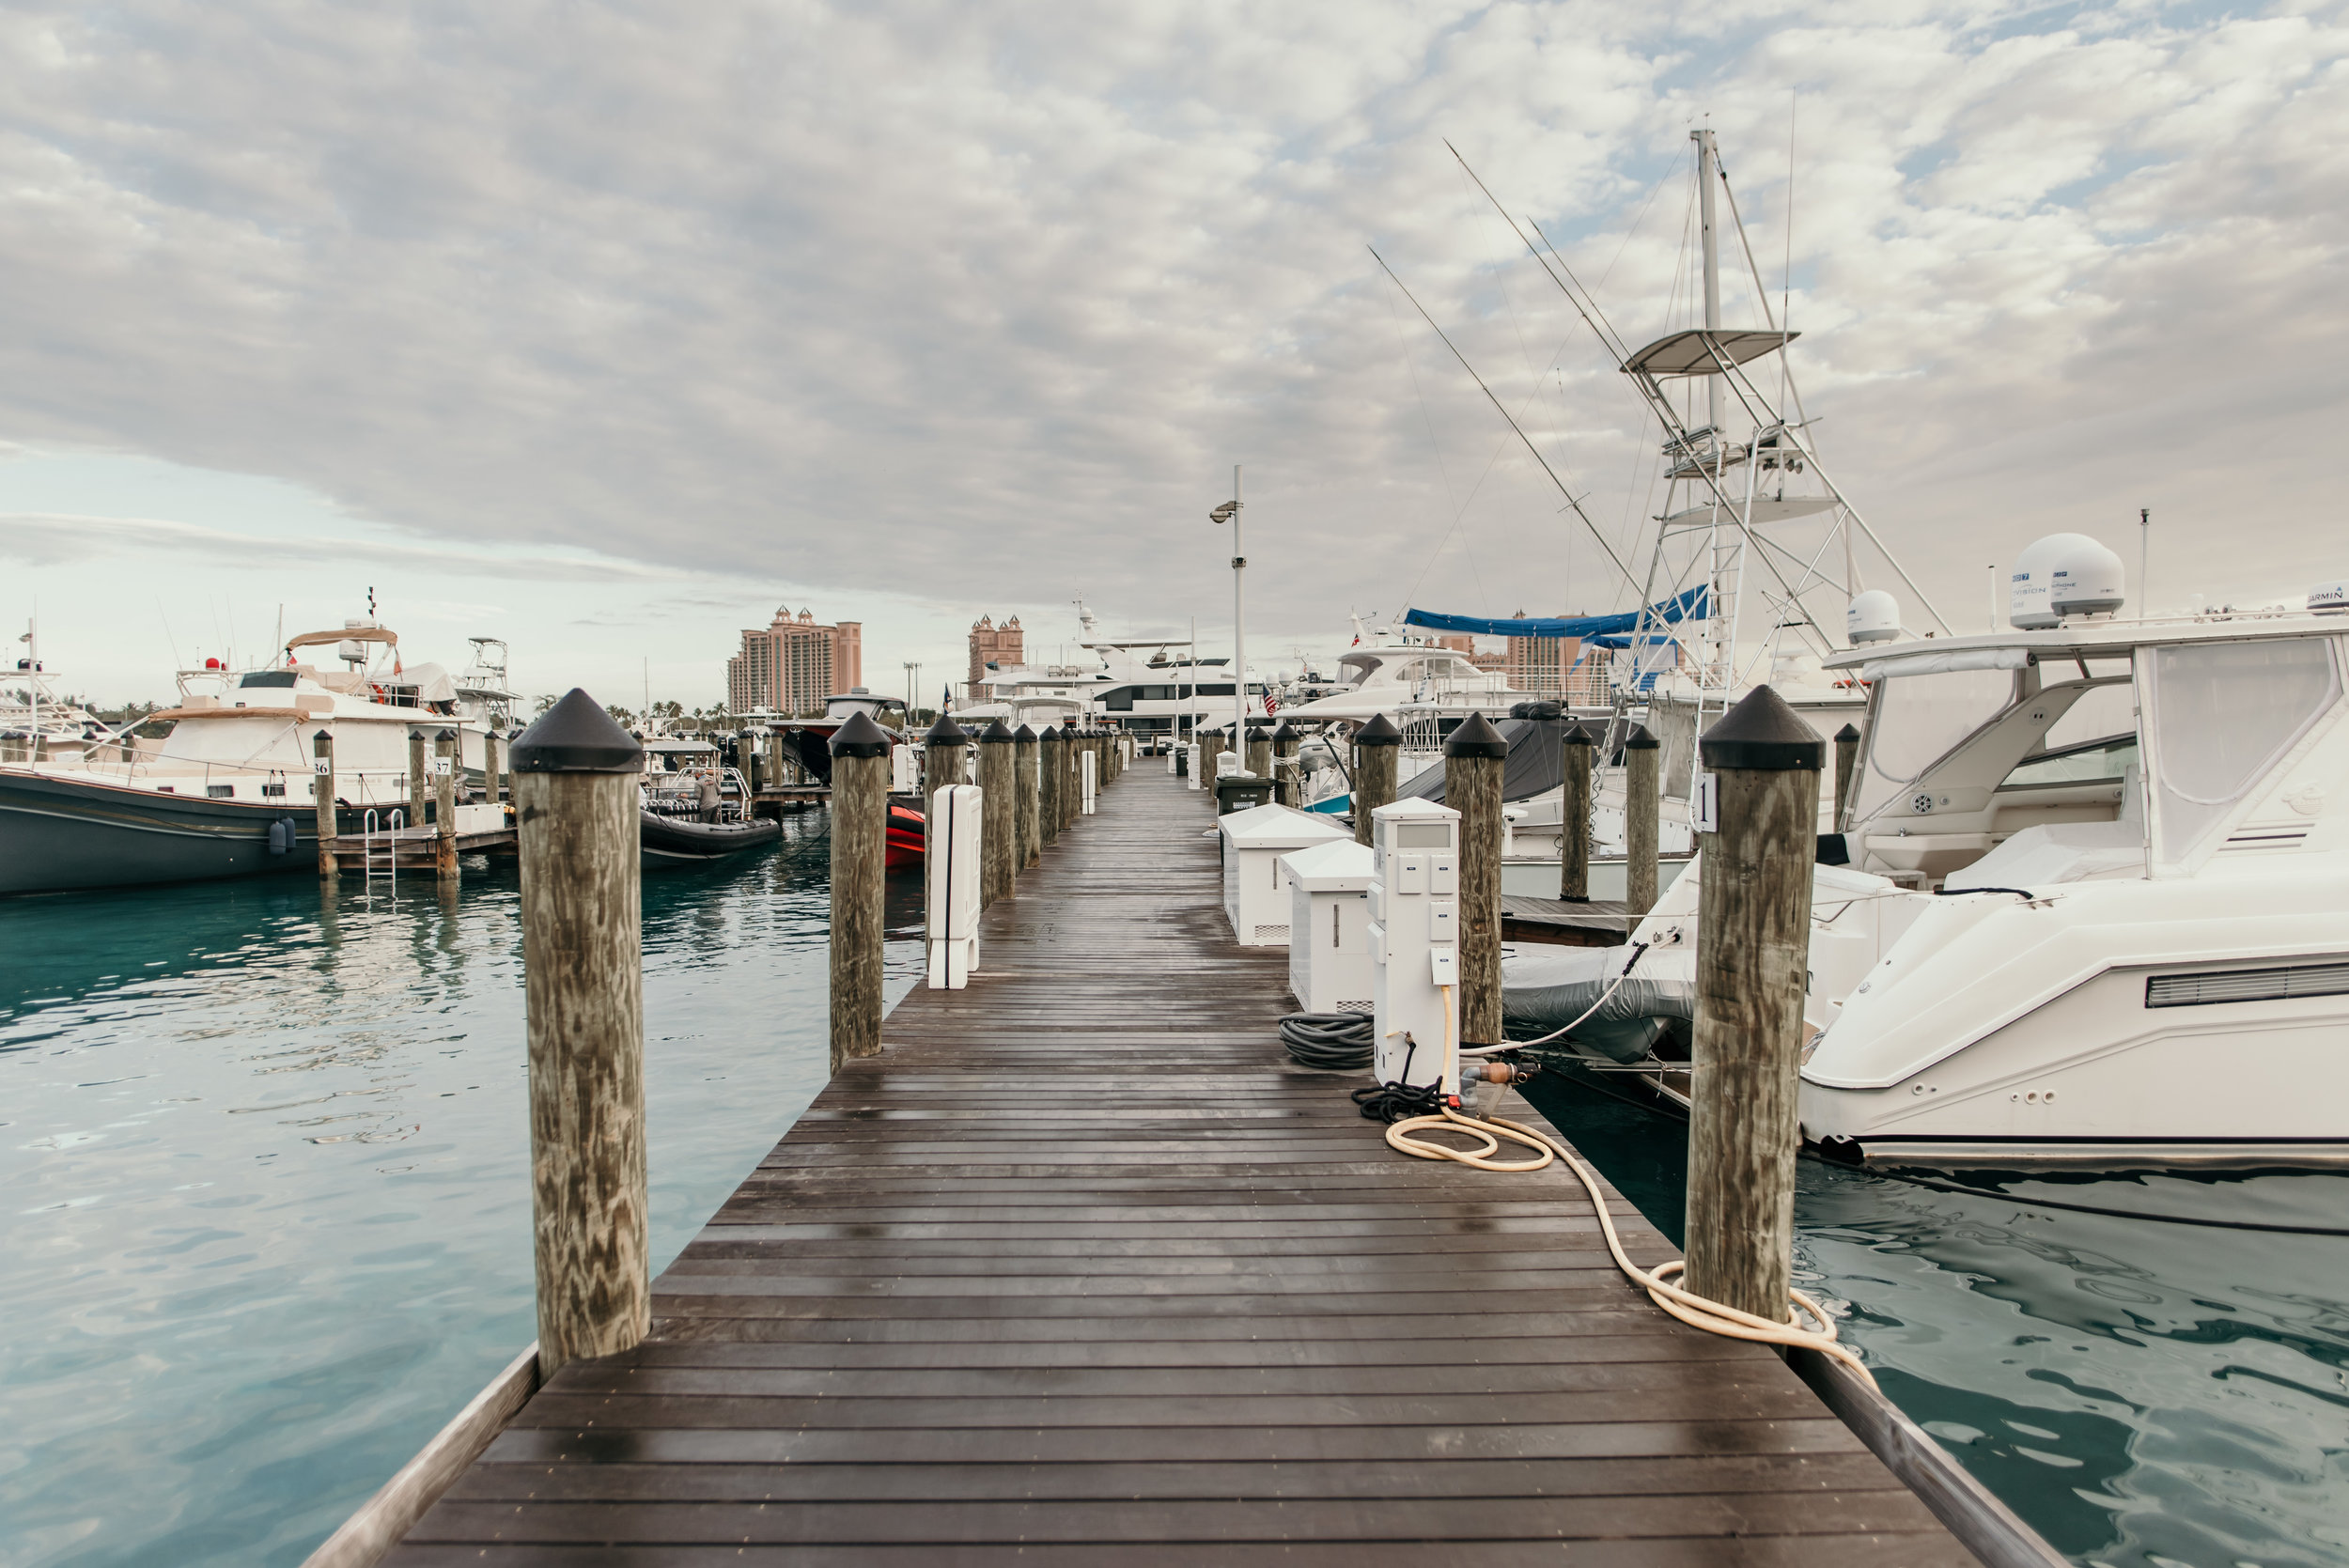 Bay Street Marina in Nassau. The Atlantis Hotel can be seen in the distance.